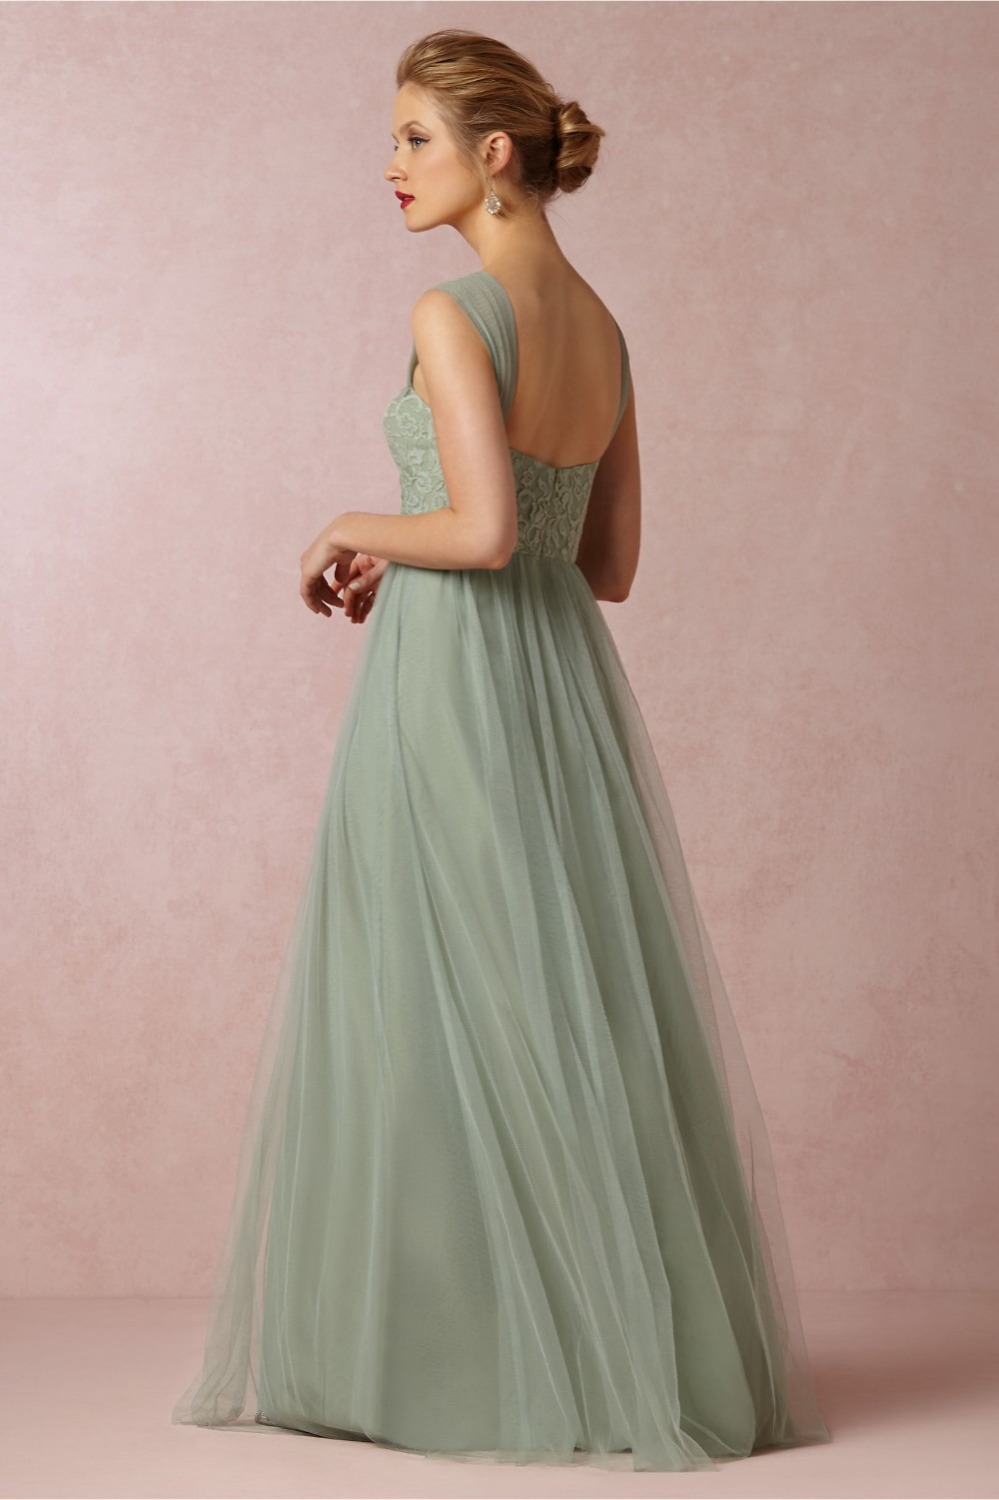 Popular mint green bridesmaid dresses 2016 with lace buy cheap 2017 mint green cheap long chiffon bridesmaid dresses sweetheart tulle bridesmaid gowns 2016 plus size wedding ombrellifo Choice Image